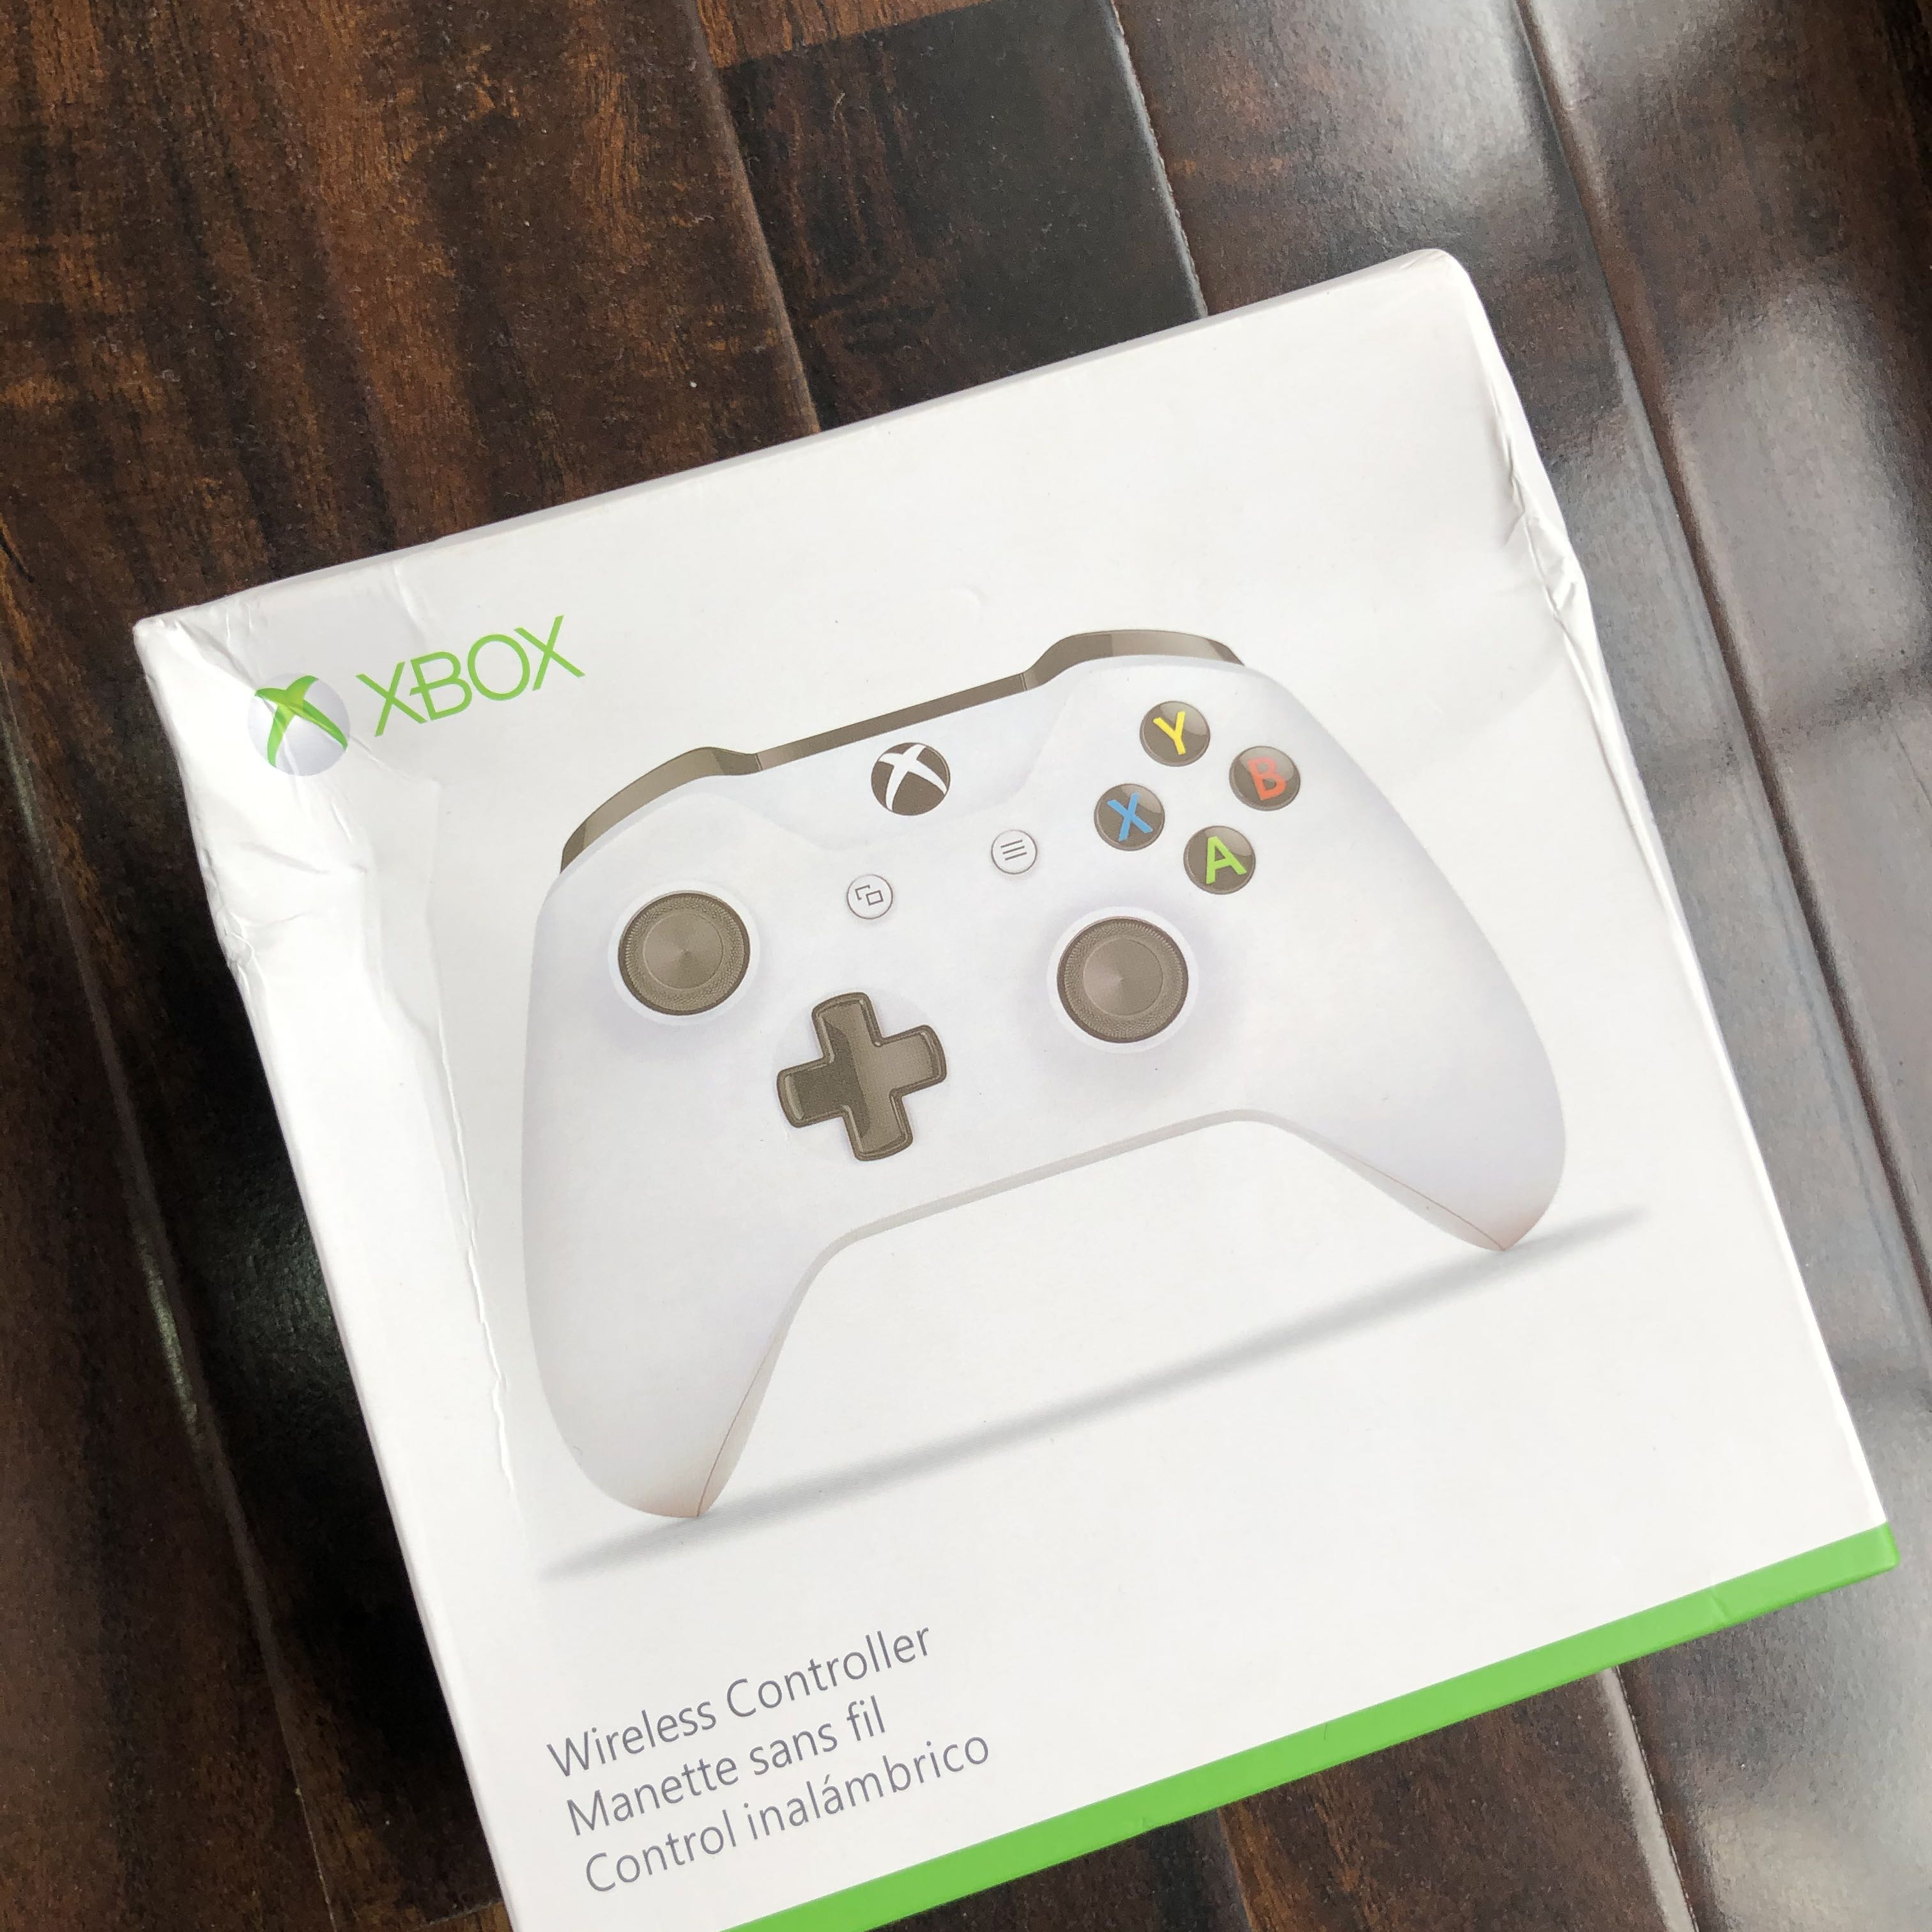 Xbox One Controller For Rent